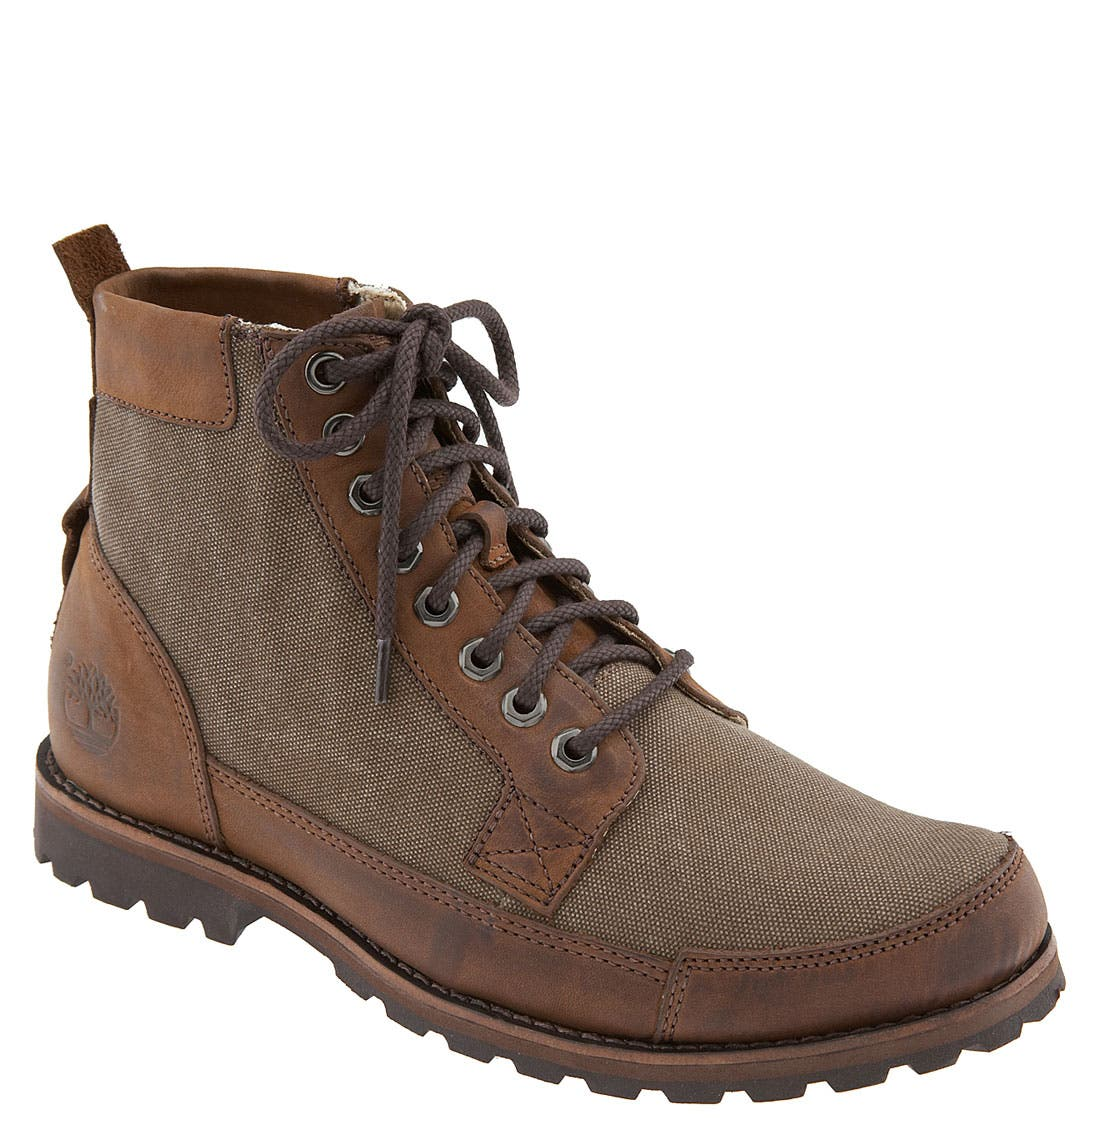 Earthkeepers<sup>®</sup> Lace-Up Boot,                         Main,                         color, 214